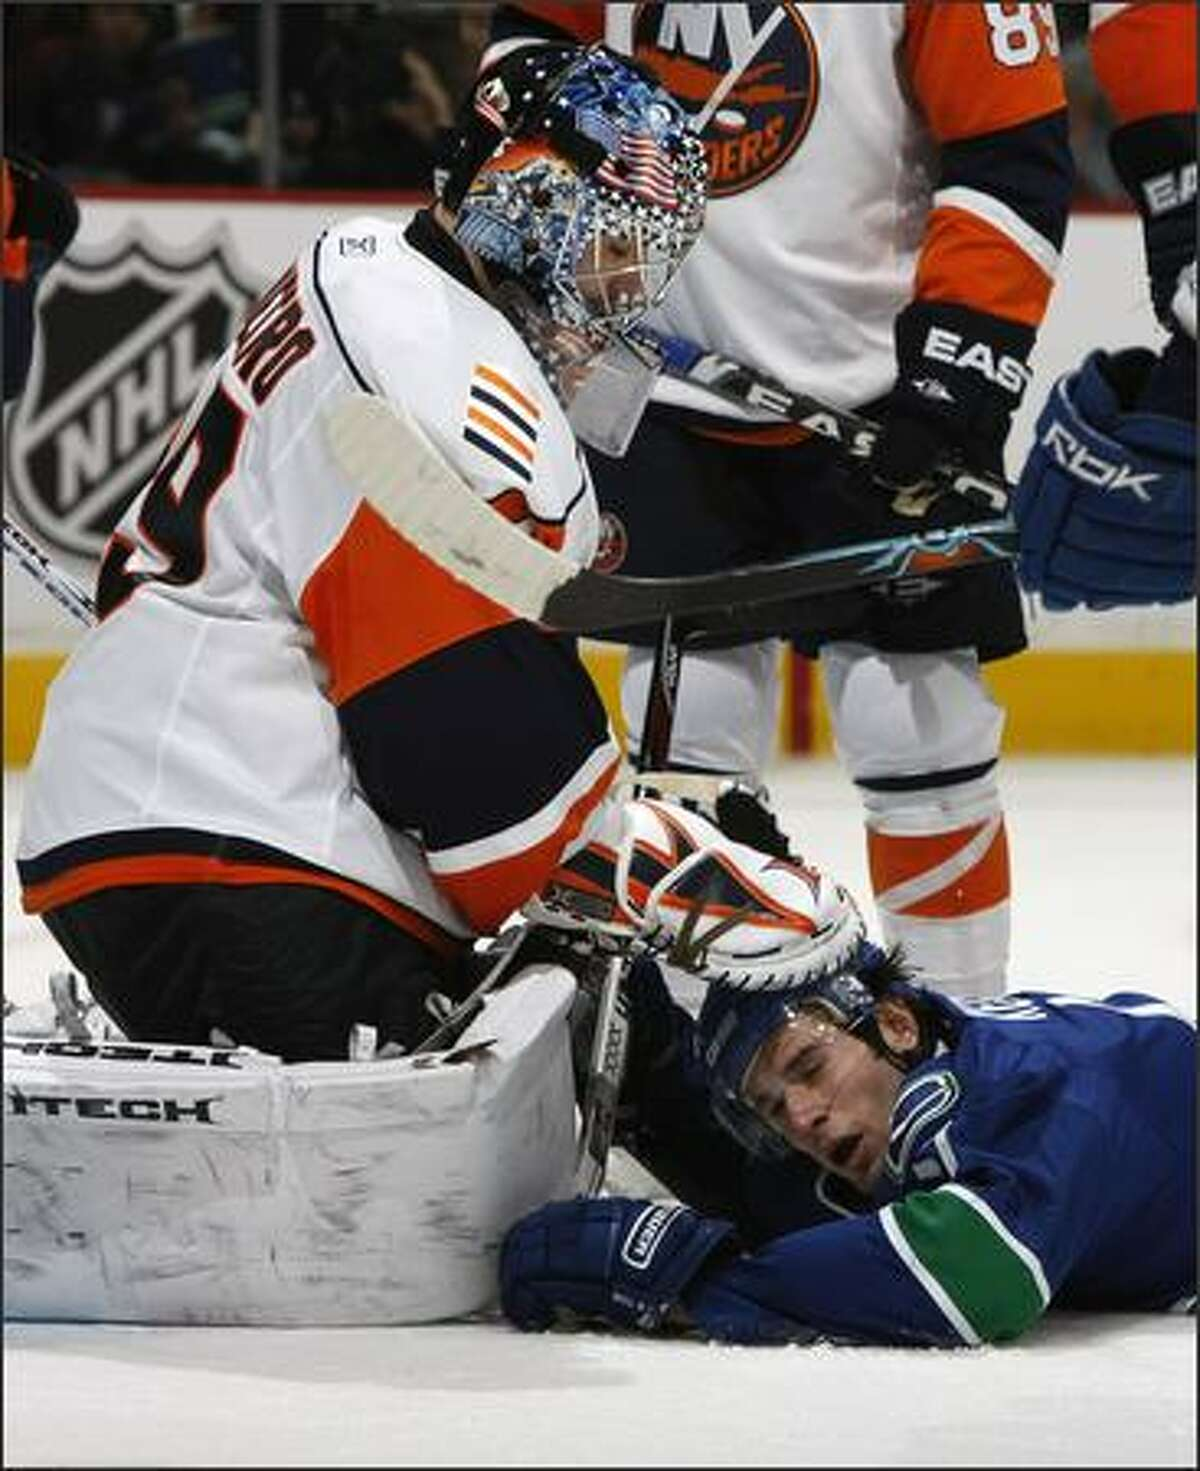 Goaltender Rick DiPietro #39 of the New York Islanders hits Ryan Kesler #17 of the Vancouver Canucks over the head with his glove during their game at General Motors Place in Vancouver, British Columbia, Canada. Photo by Jeff Vinnick/NHLI via Getty Images